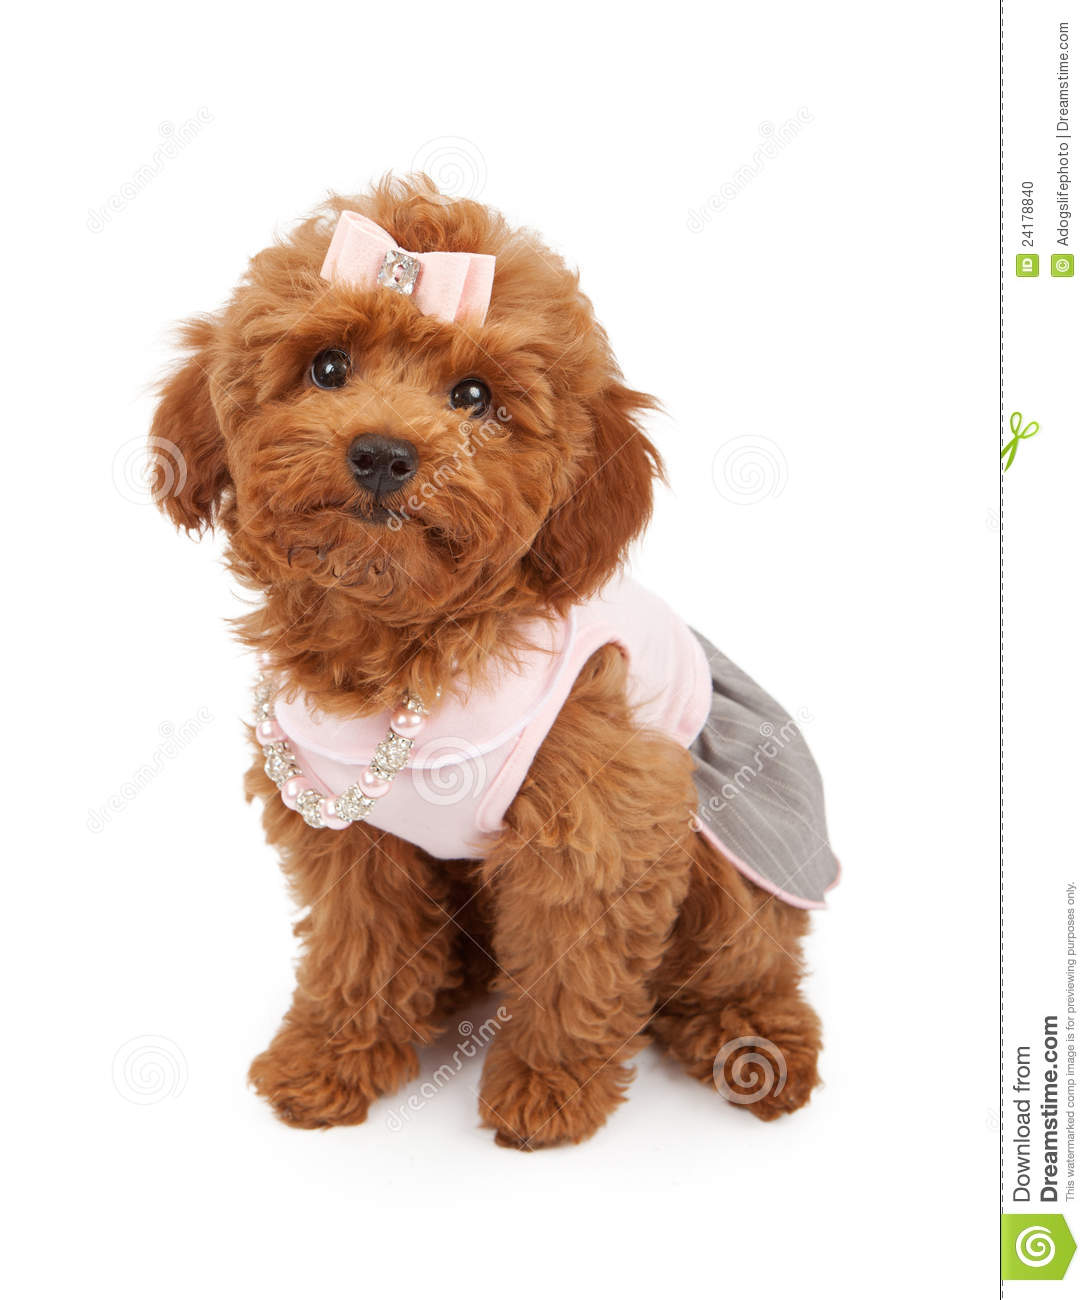 cute young red poodle puppy wearing a pink dress hair bow and pearl